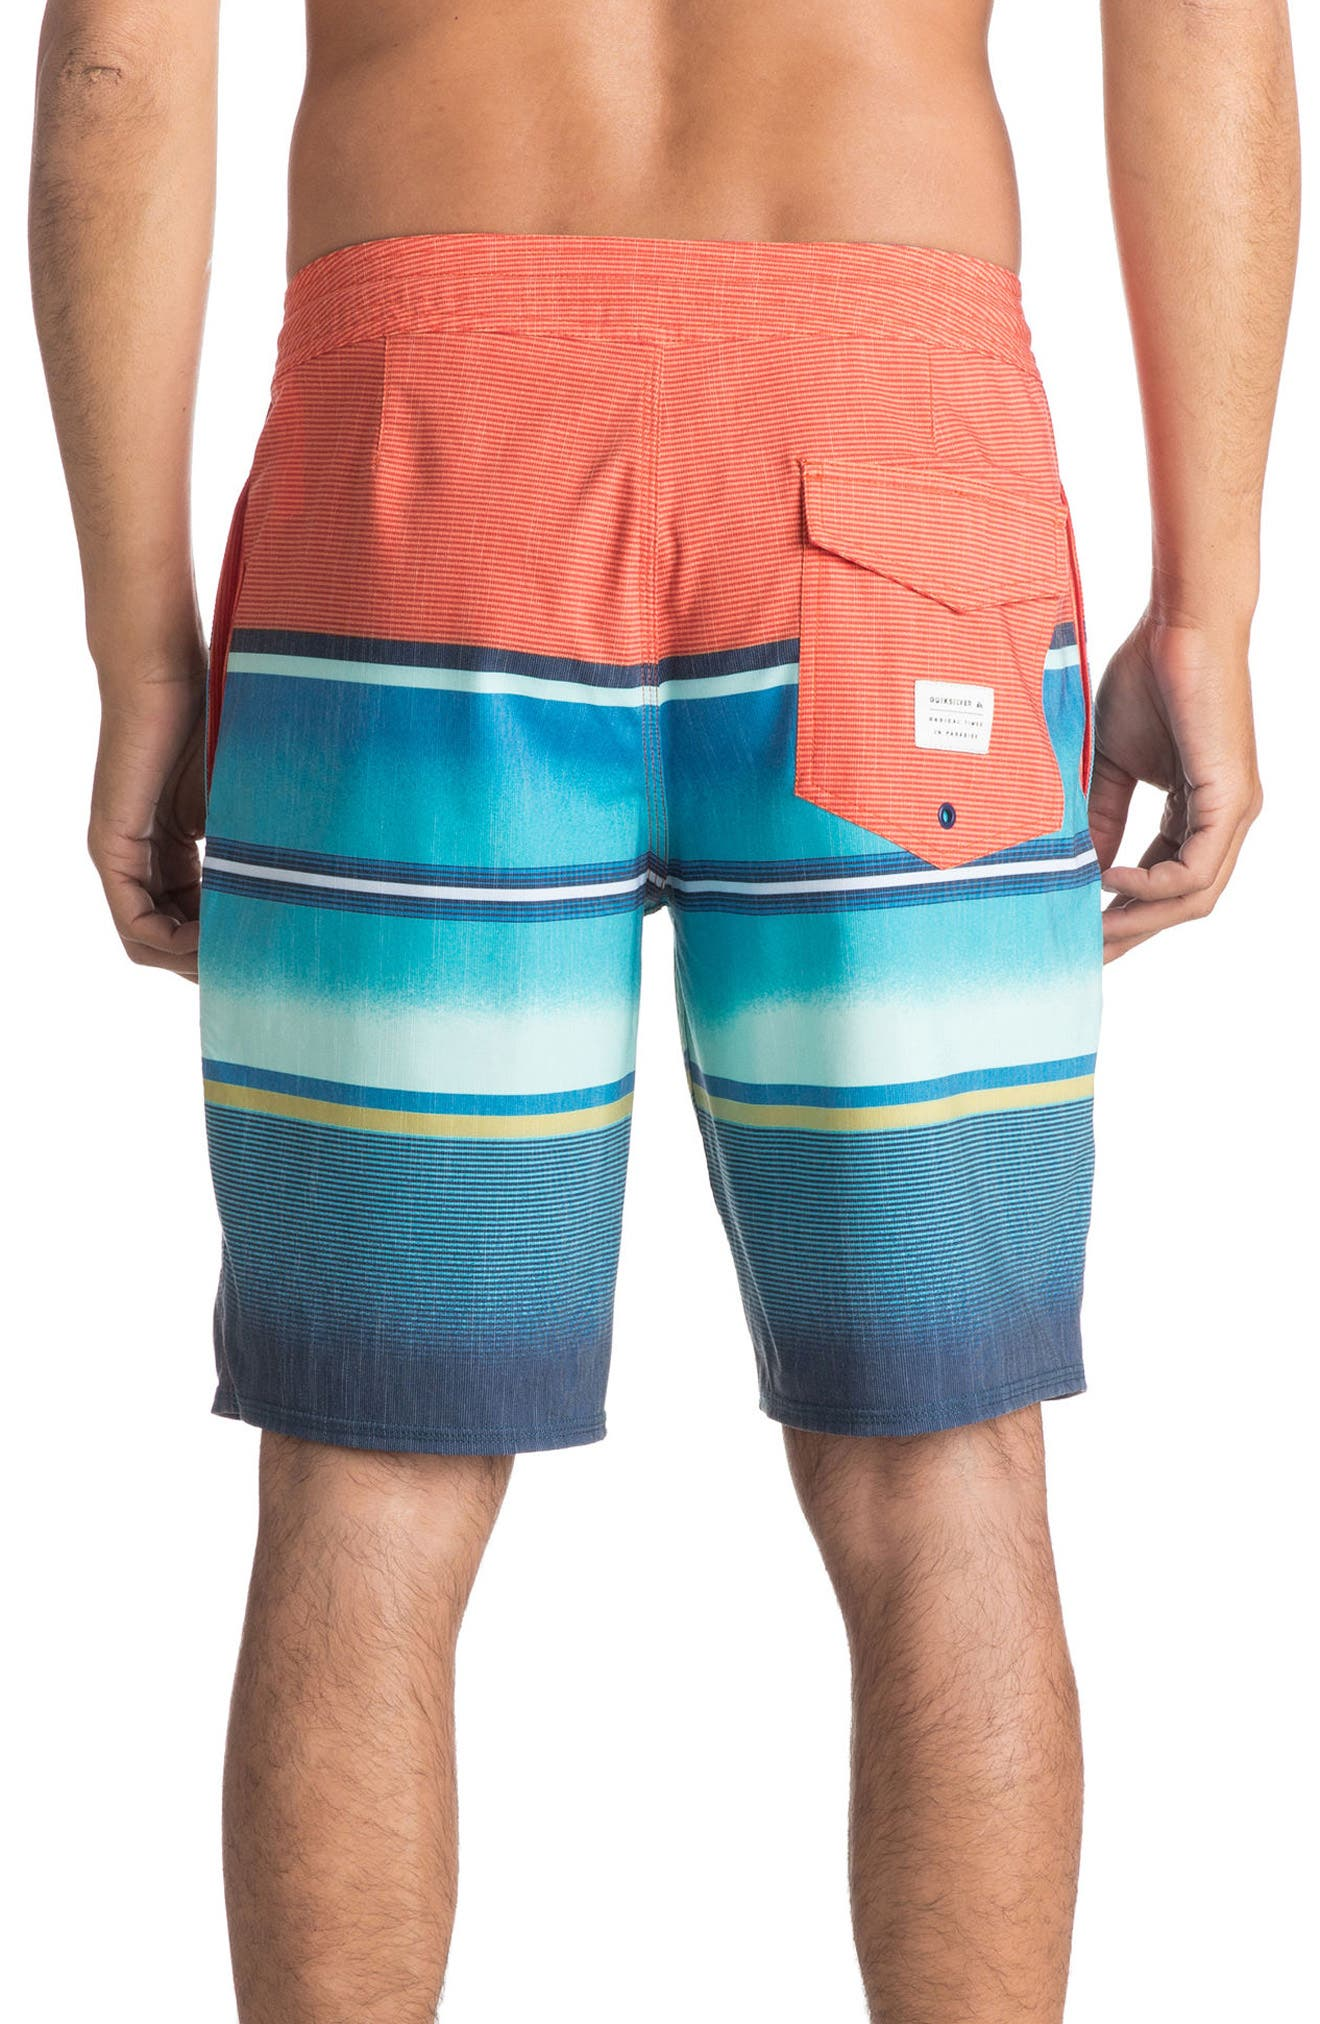 Swell Vision Board Shorts,                             Alternate thumbnail 2, color,                             Coral Rose